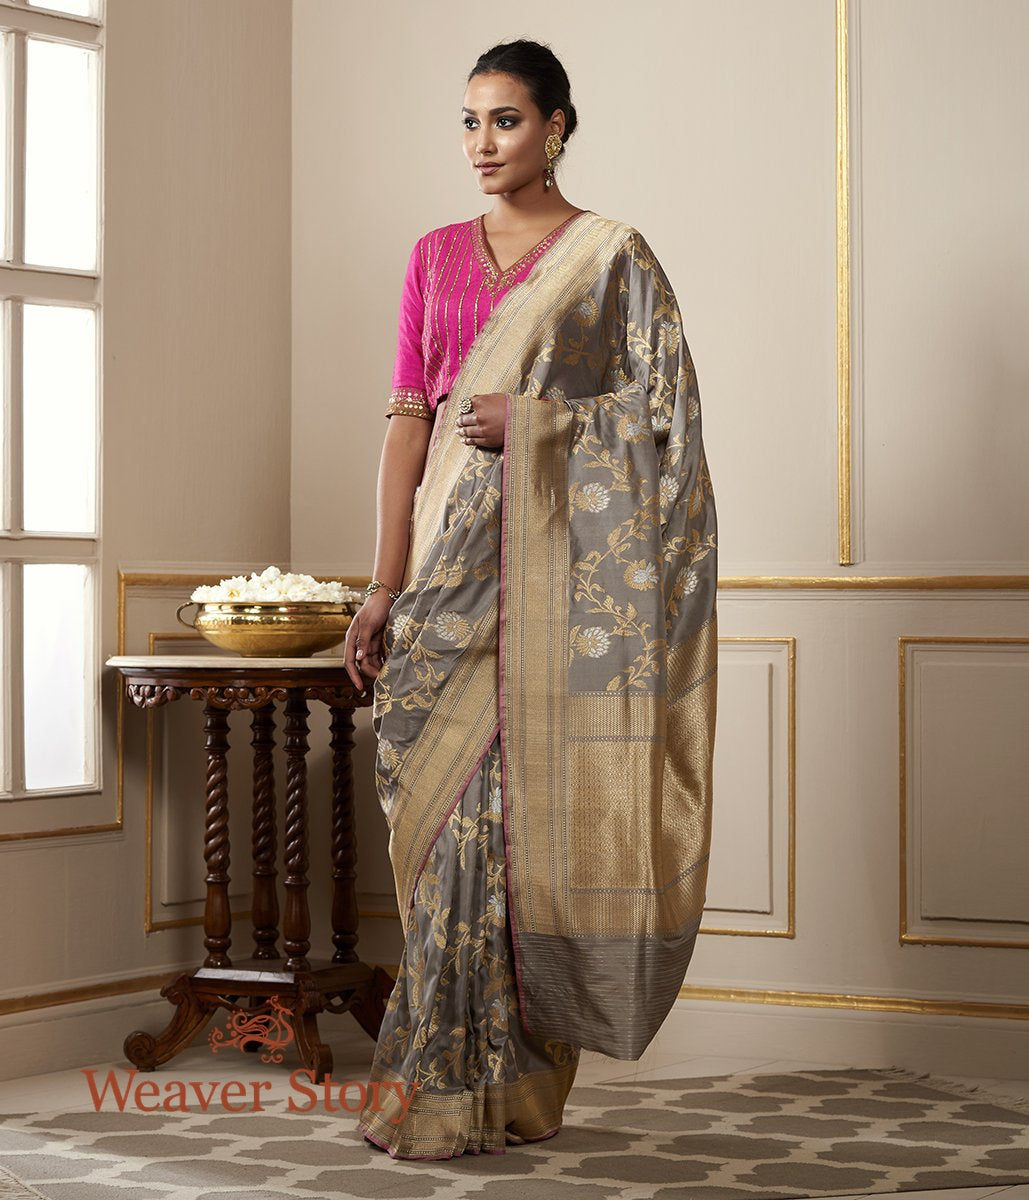 Handwoven Grey and Beige Banarasi Jangla with Pink Selvedge